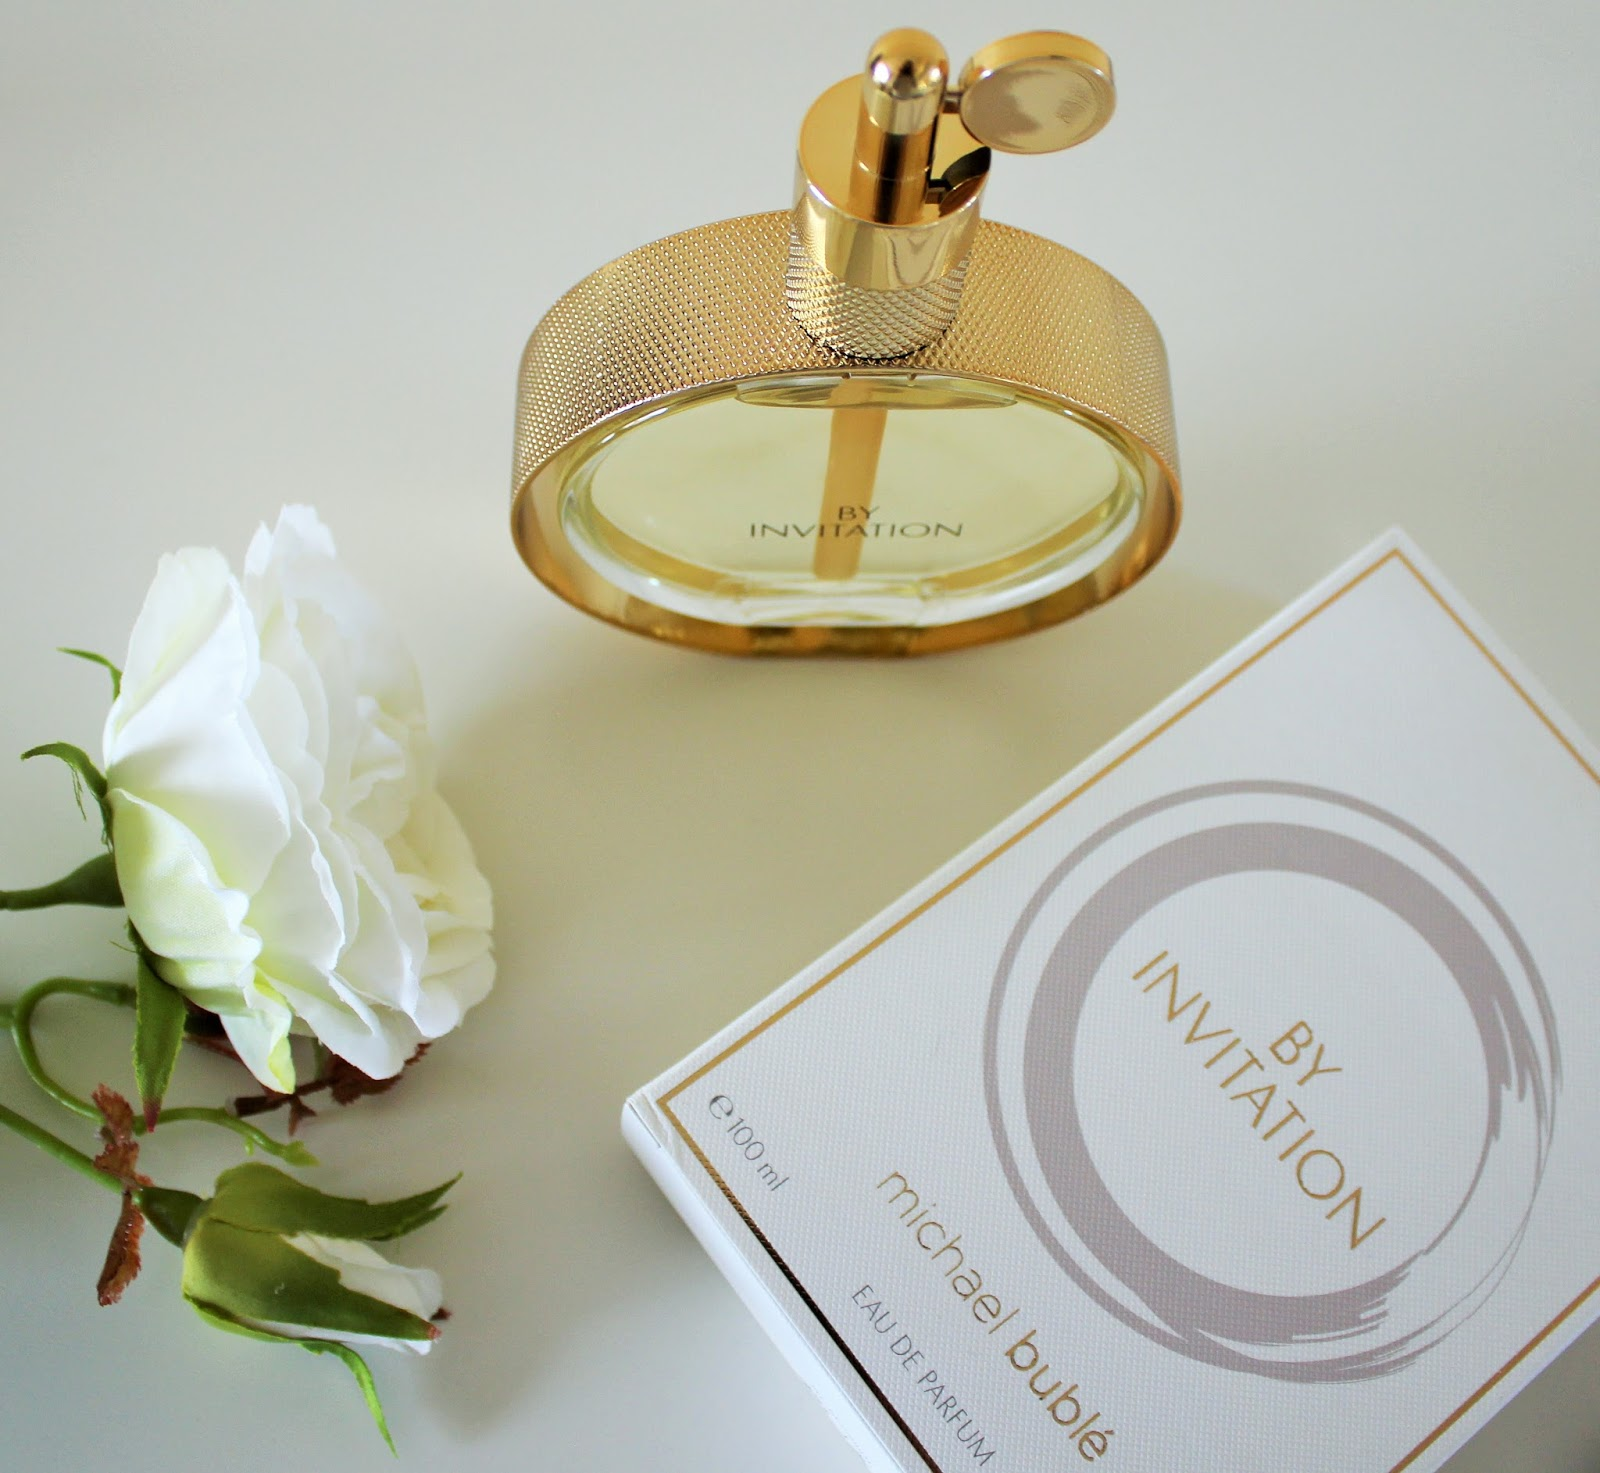 Michael Buble By Invitation Perfume Review 2